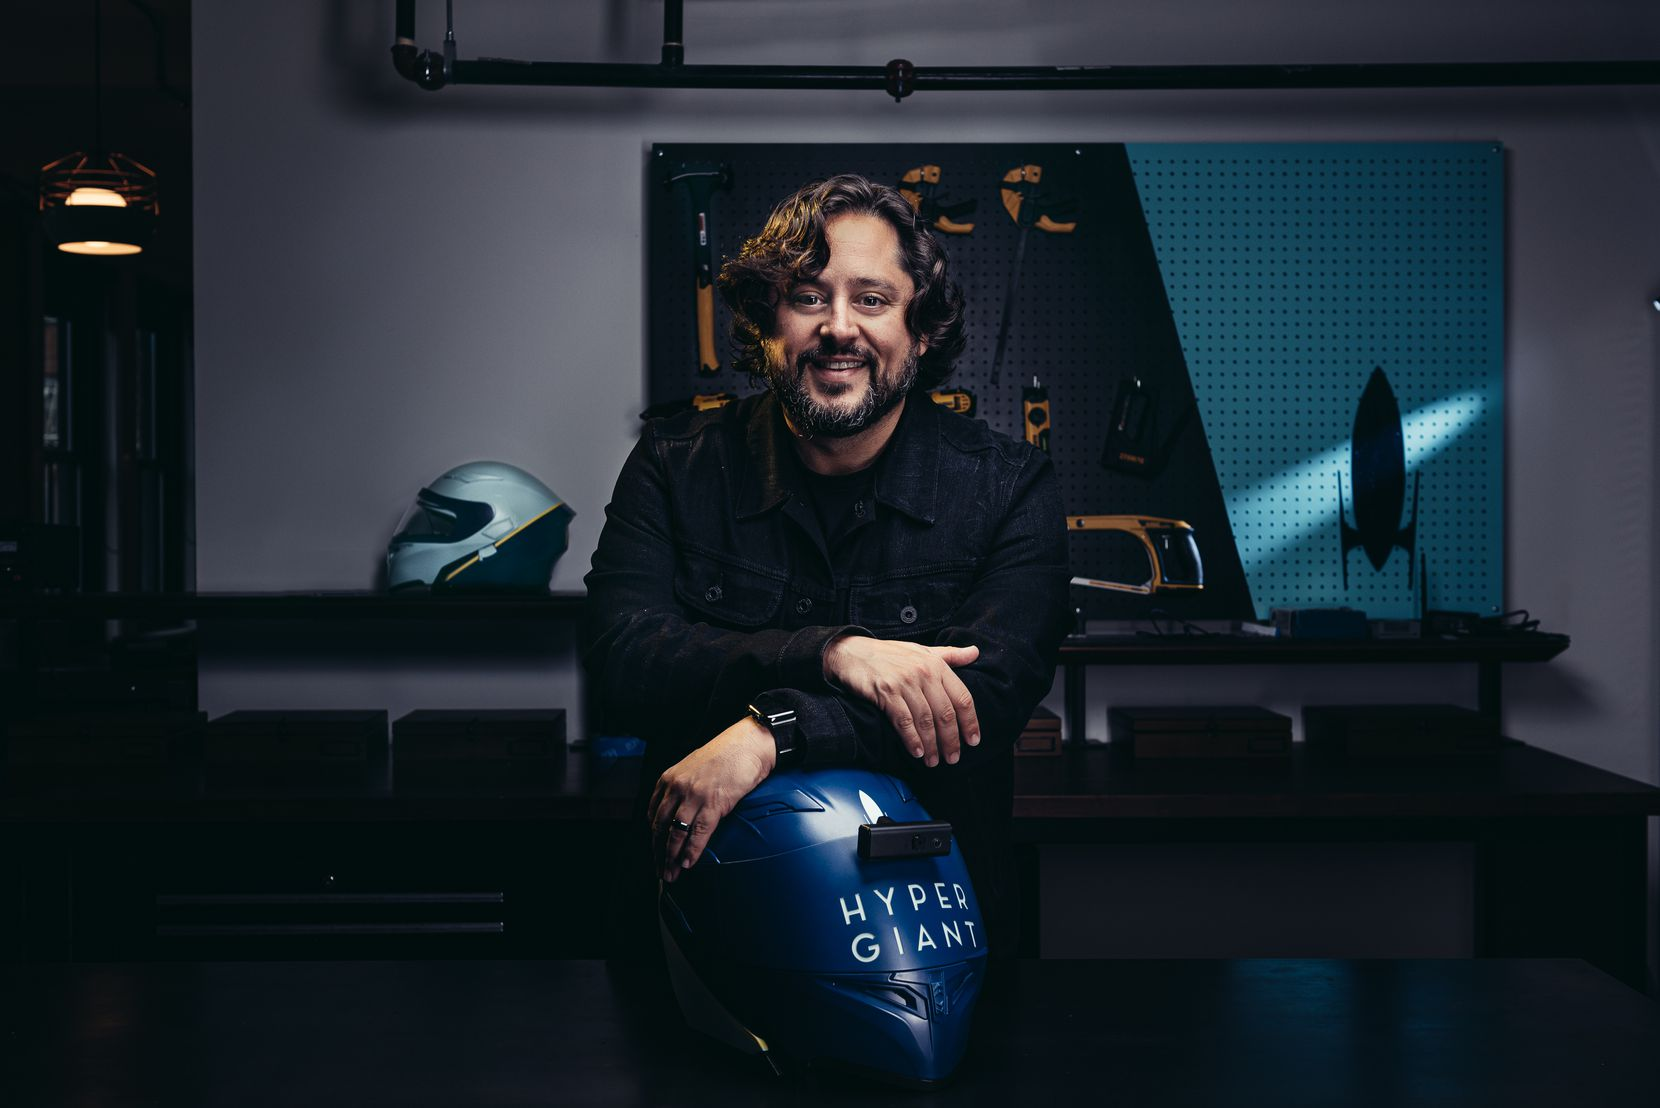 Ben Lamm is the CEO and founder of Hypergiant, a tech company that uses artificial intelligence and emerging technologies to solve problems.